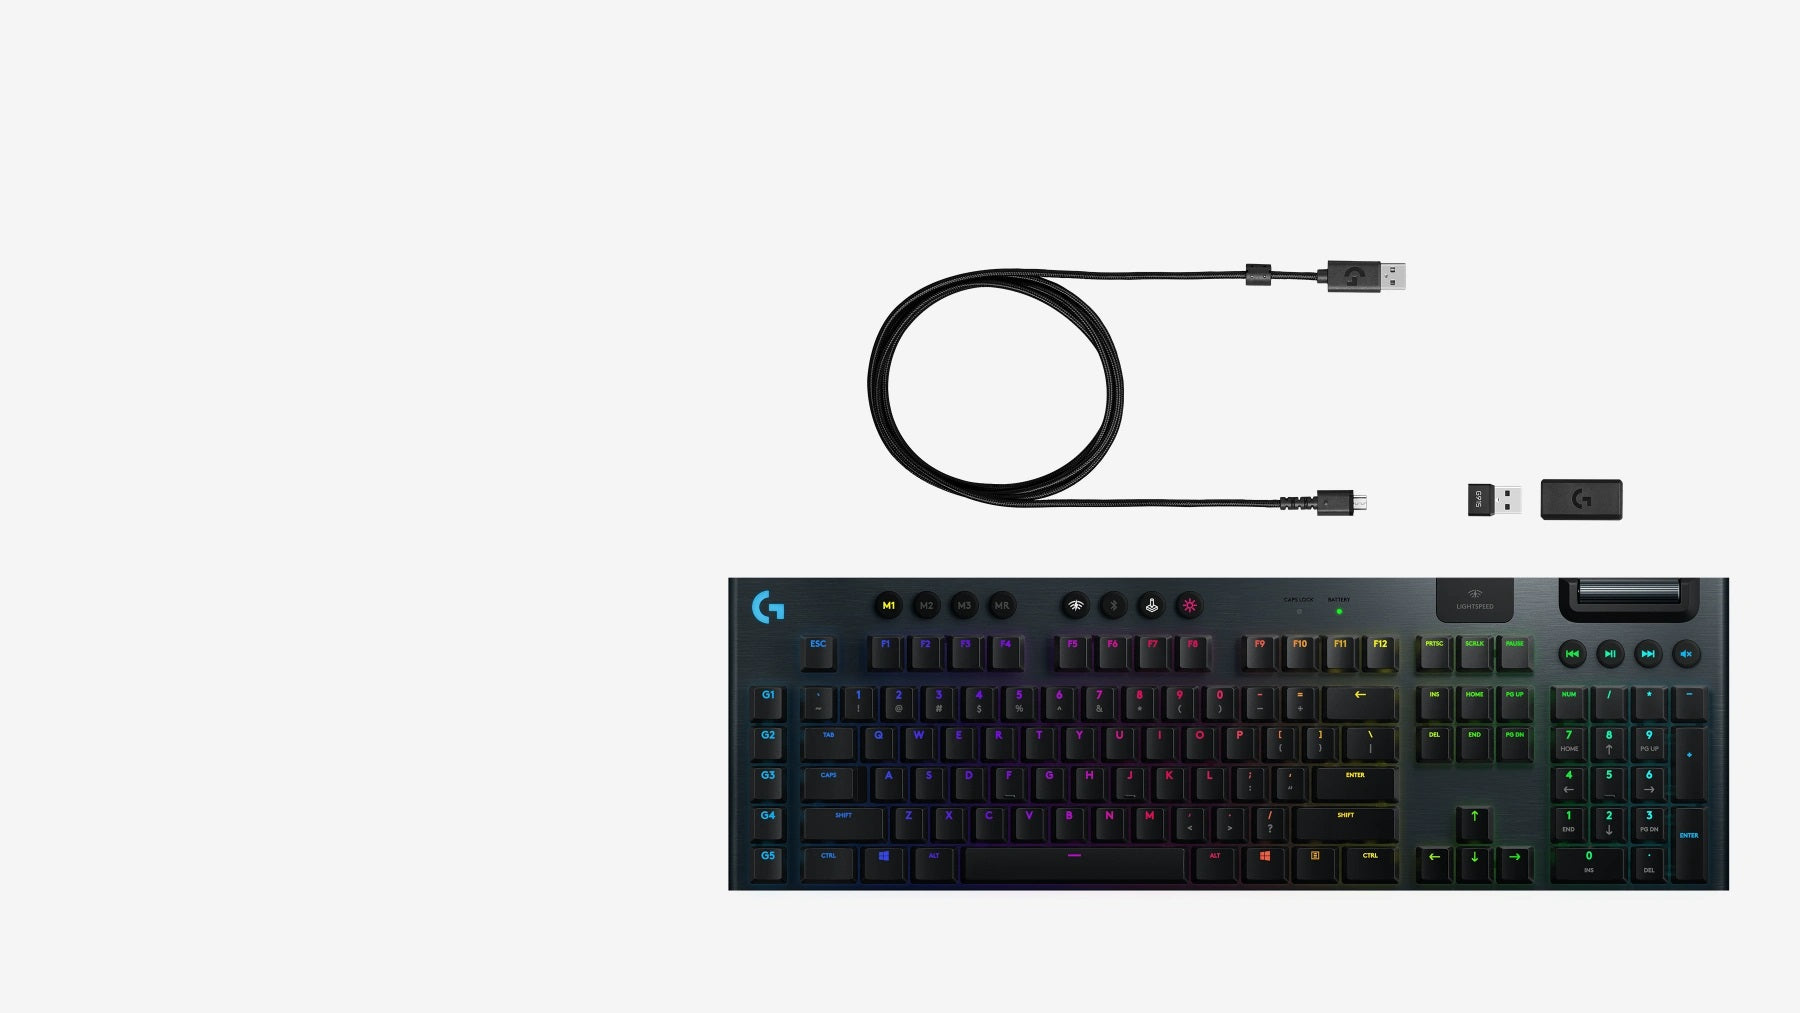 IN THE BOX you get the G915 LIGHTSPEED wireless mechanical keyboard, LIGHTSPEED USB receiver, USB extender, Micro-USB cable & User documentation.